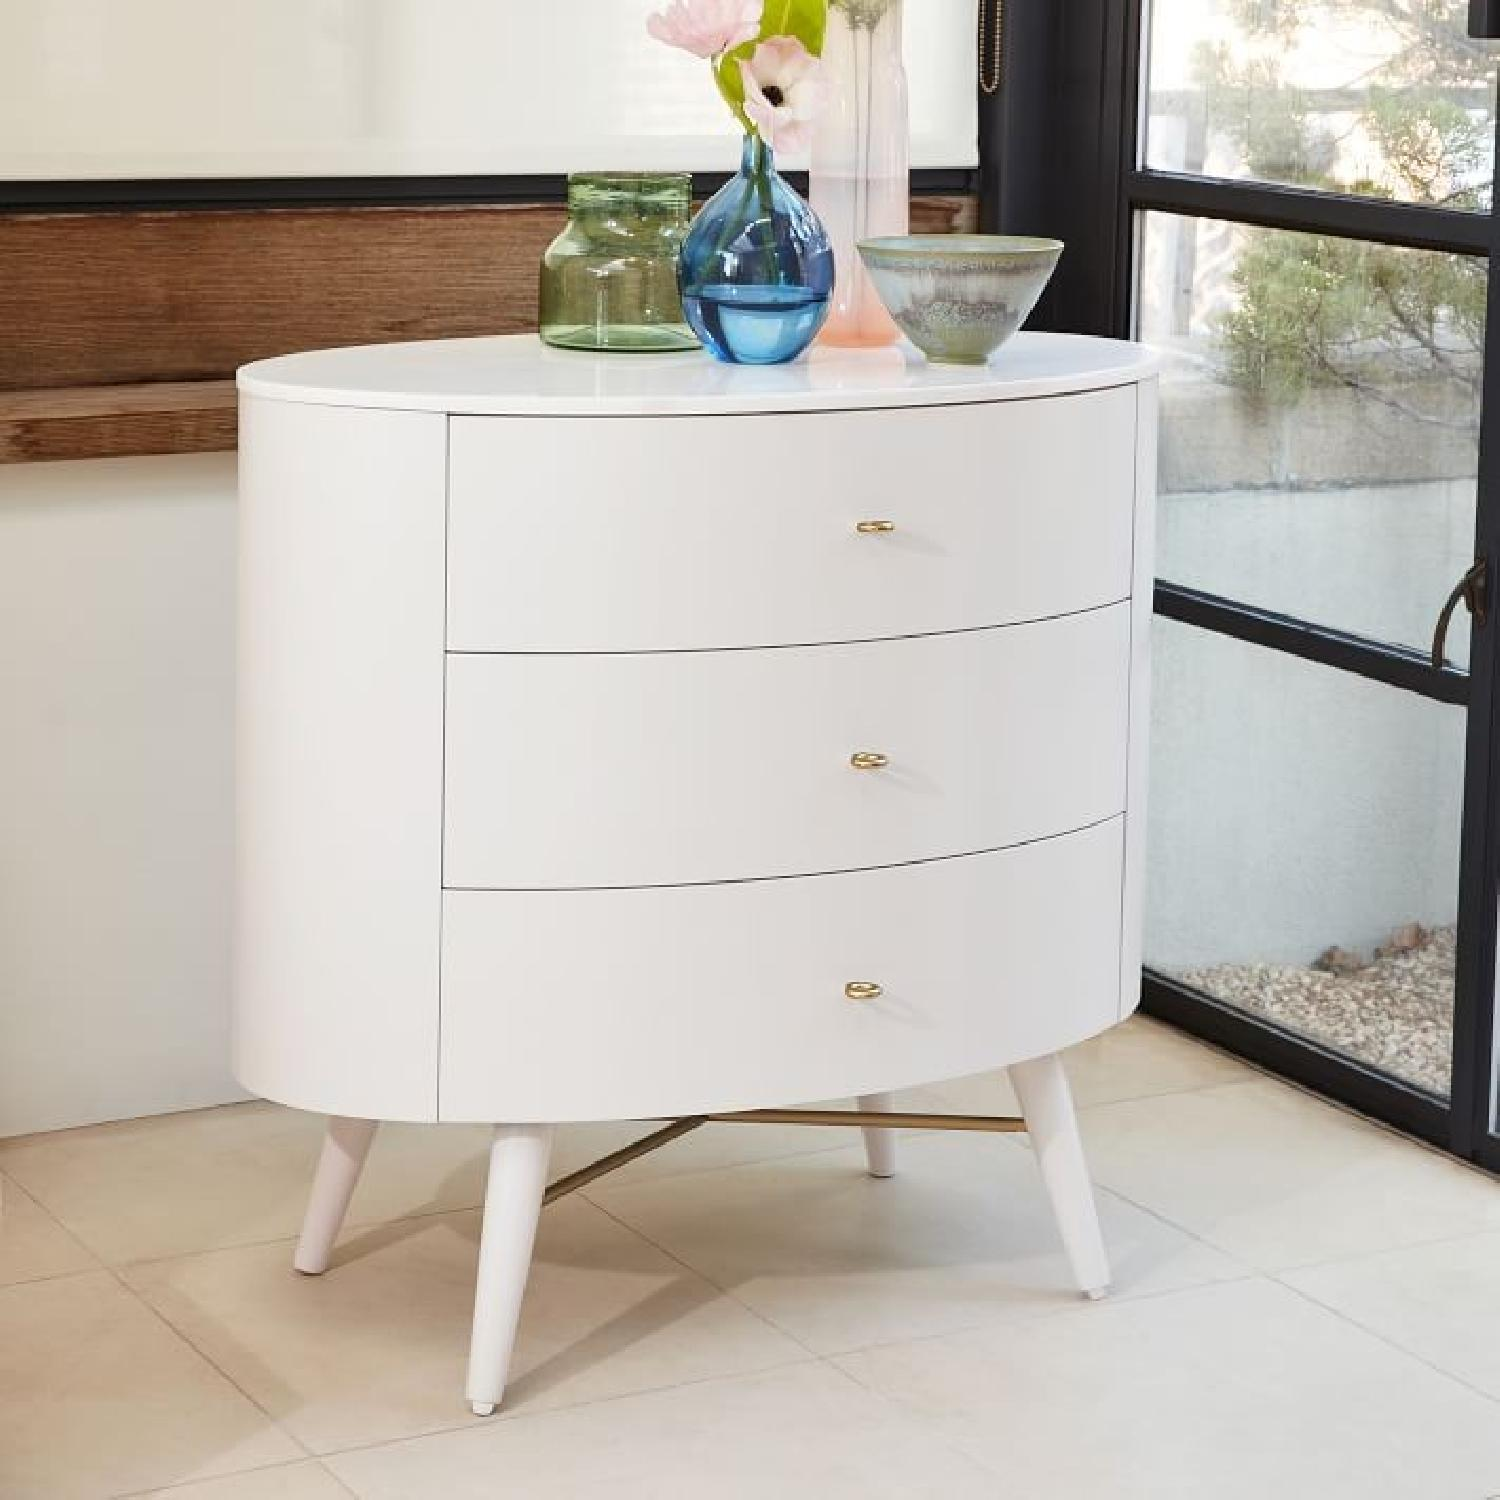 West Elm Penelope 3 Drawer Dresser - image-2